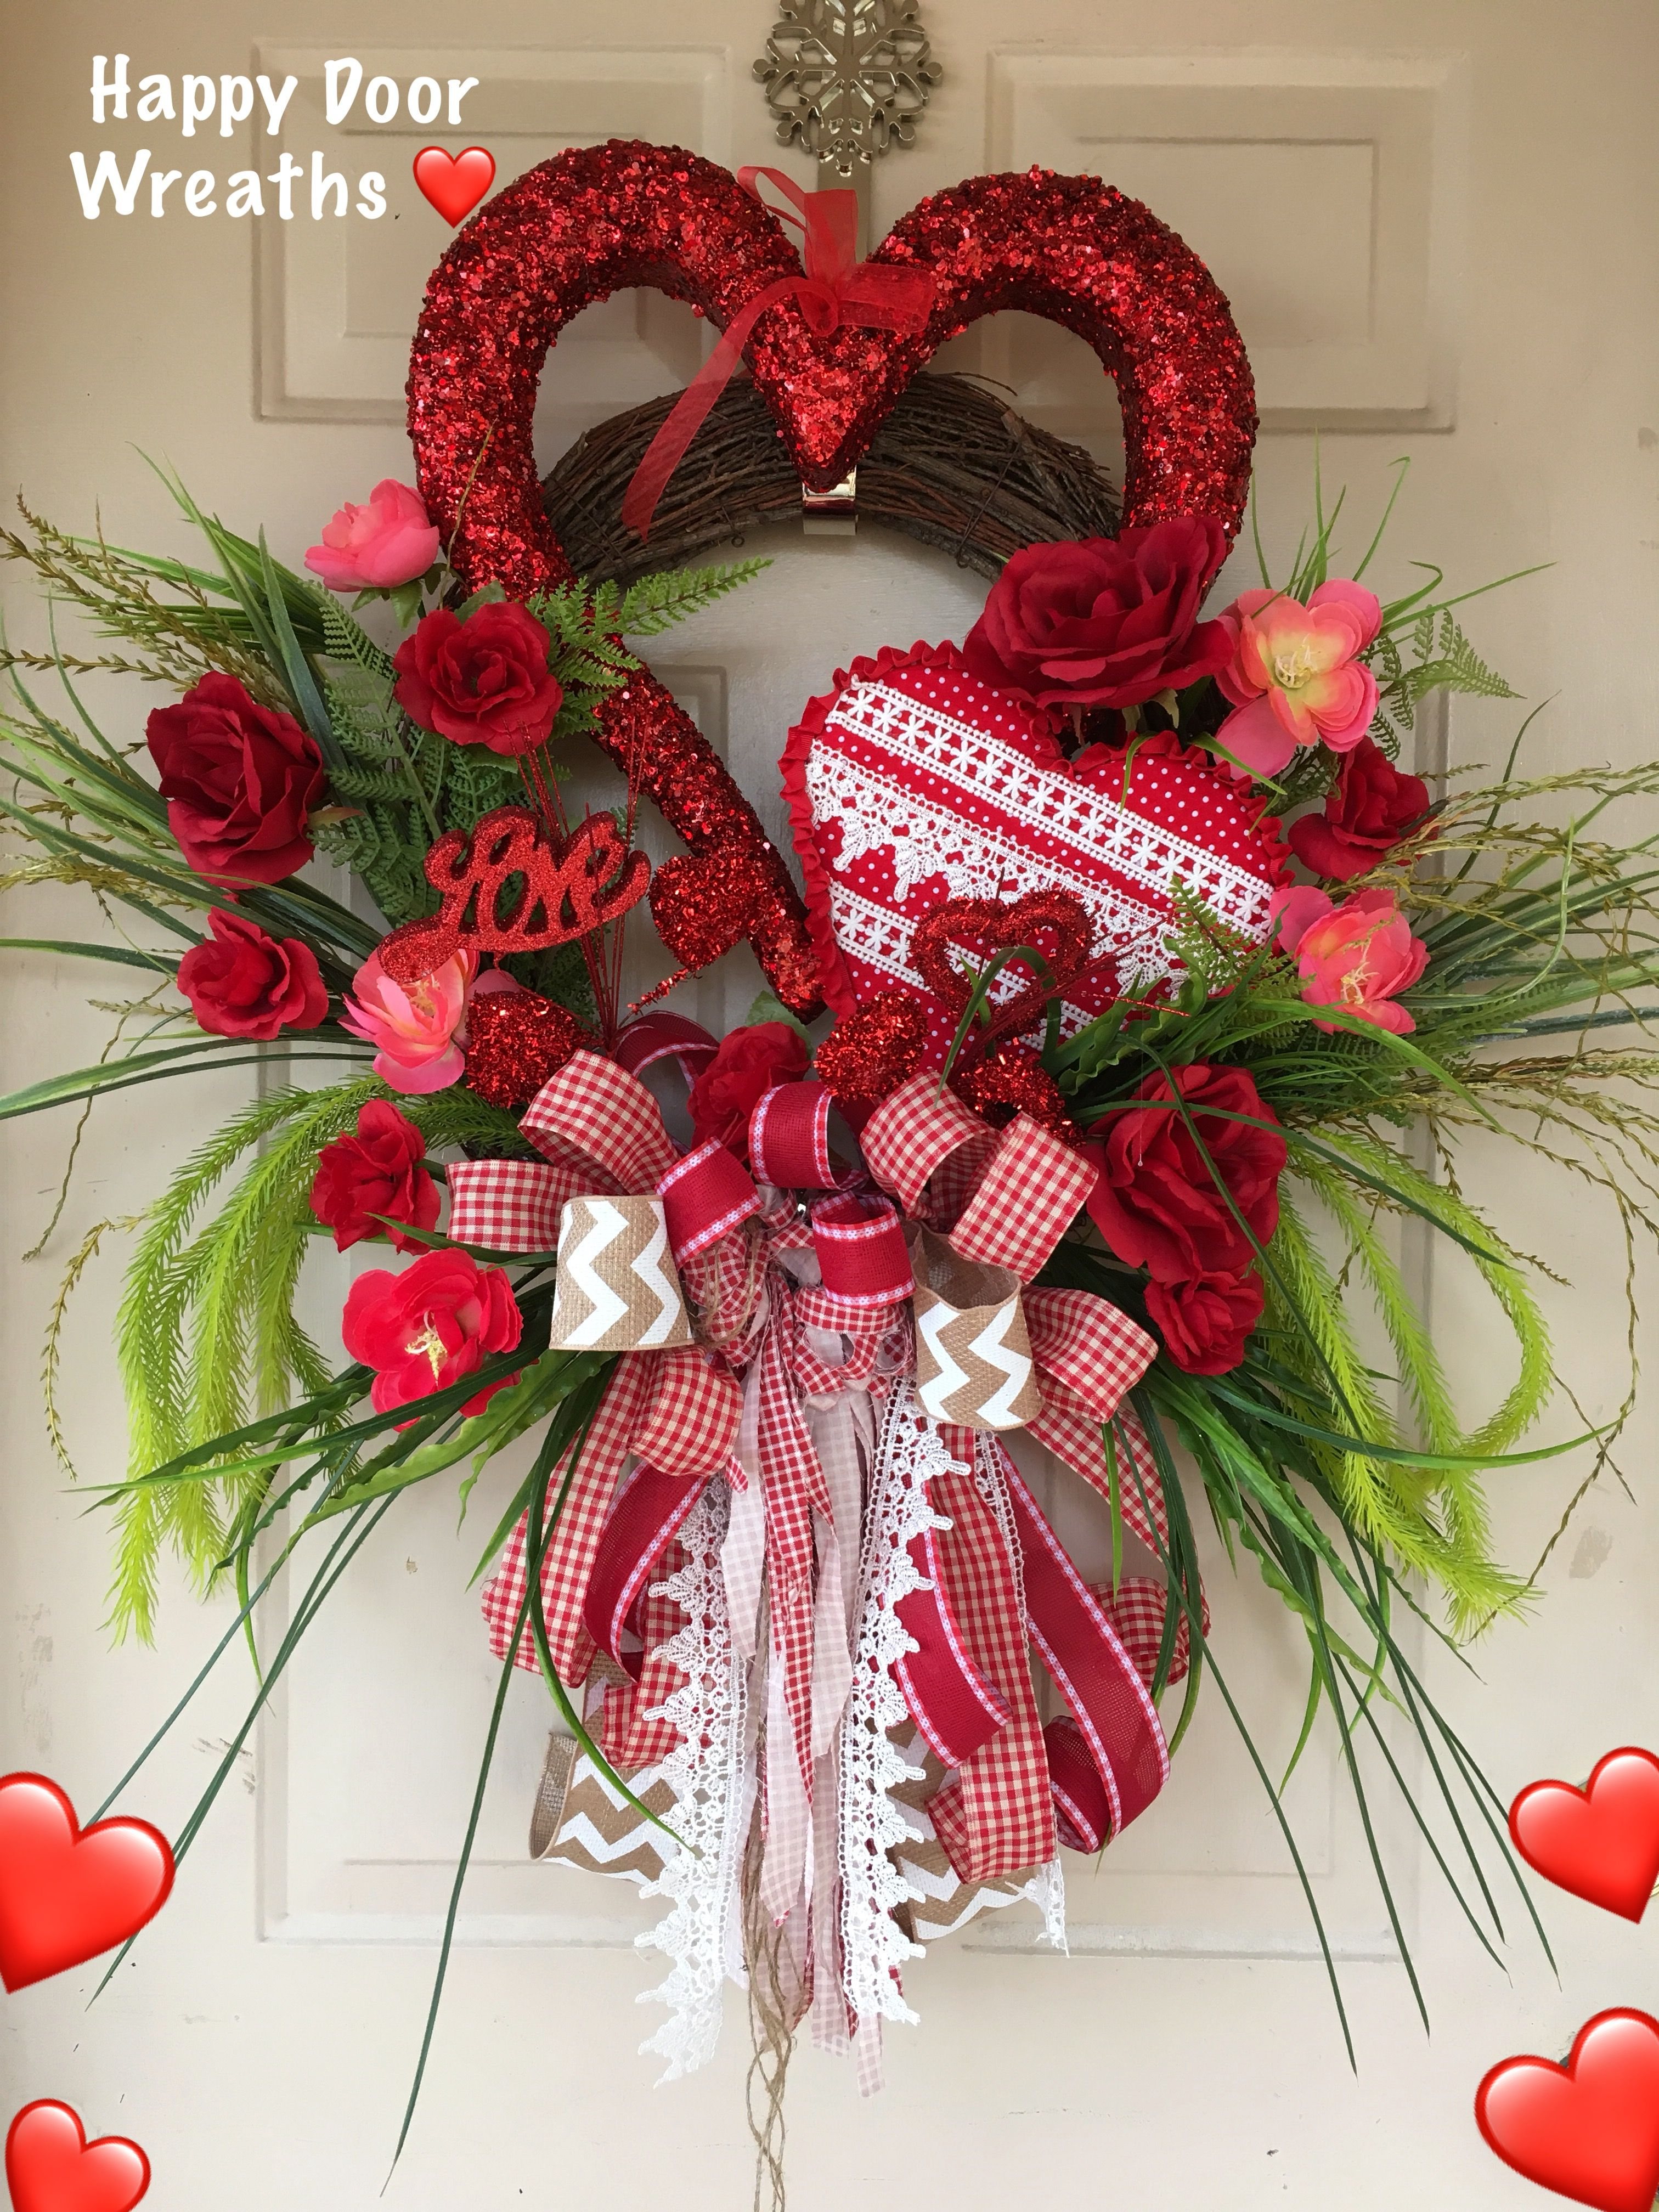 Heart Grapevine Wreath By Happy Door Wreaths Valentine S Day Love Wreath Diy Valentines Day Wreath Valentine Wreath Diy Valentine Decorations